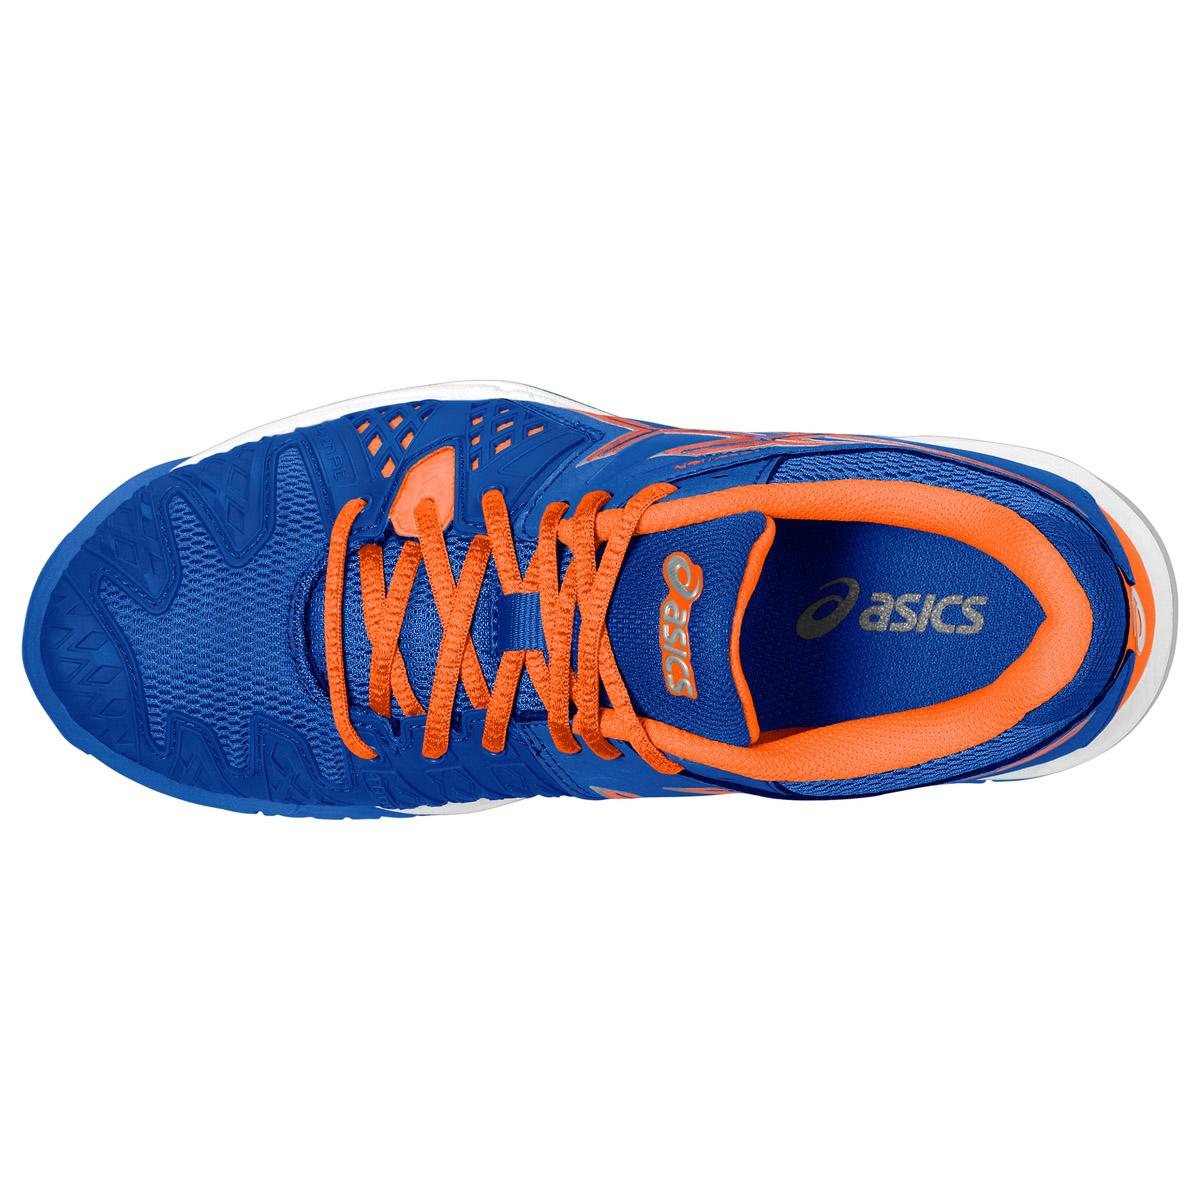 Out Of Stock. Asics Kids GEL Resolution 6 GS Tennis Shoes ...